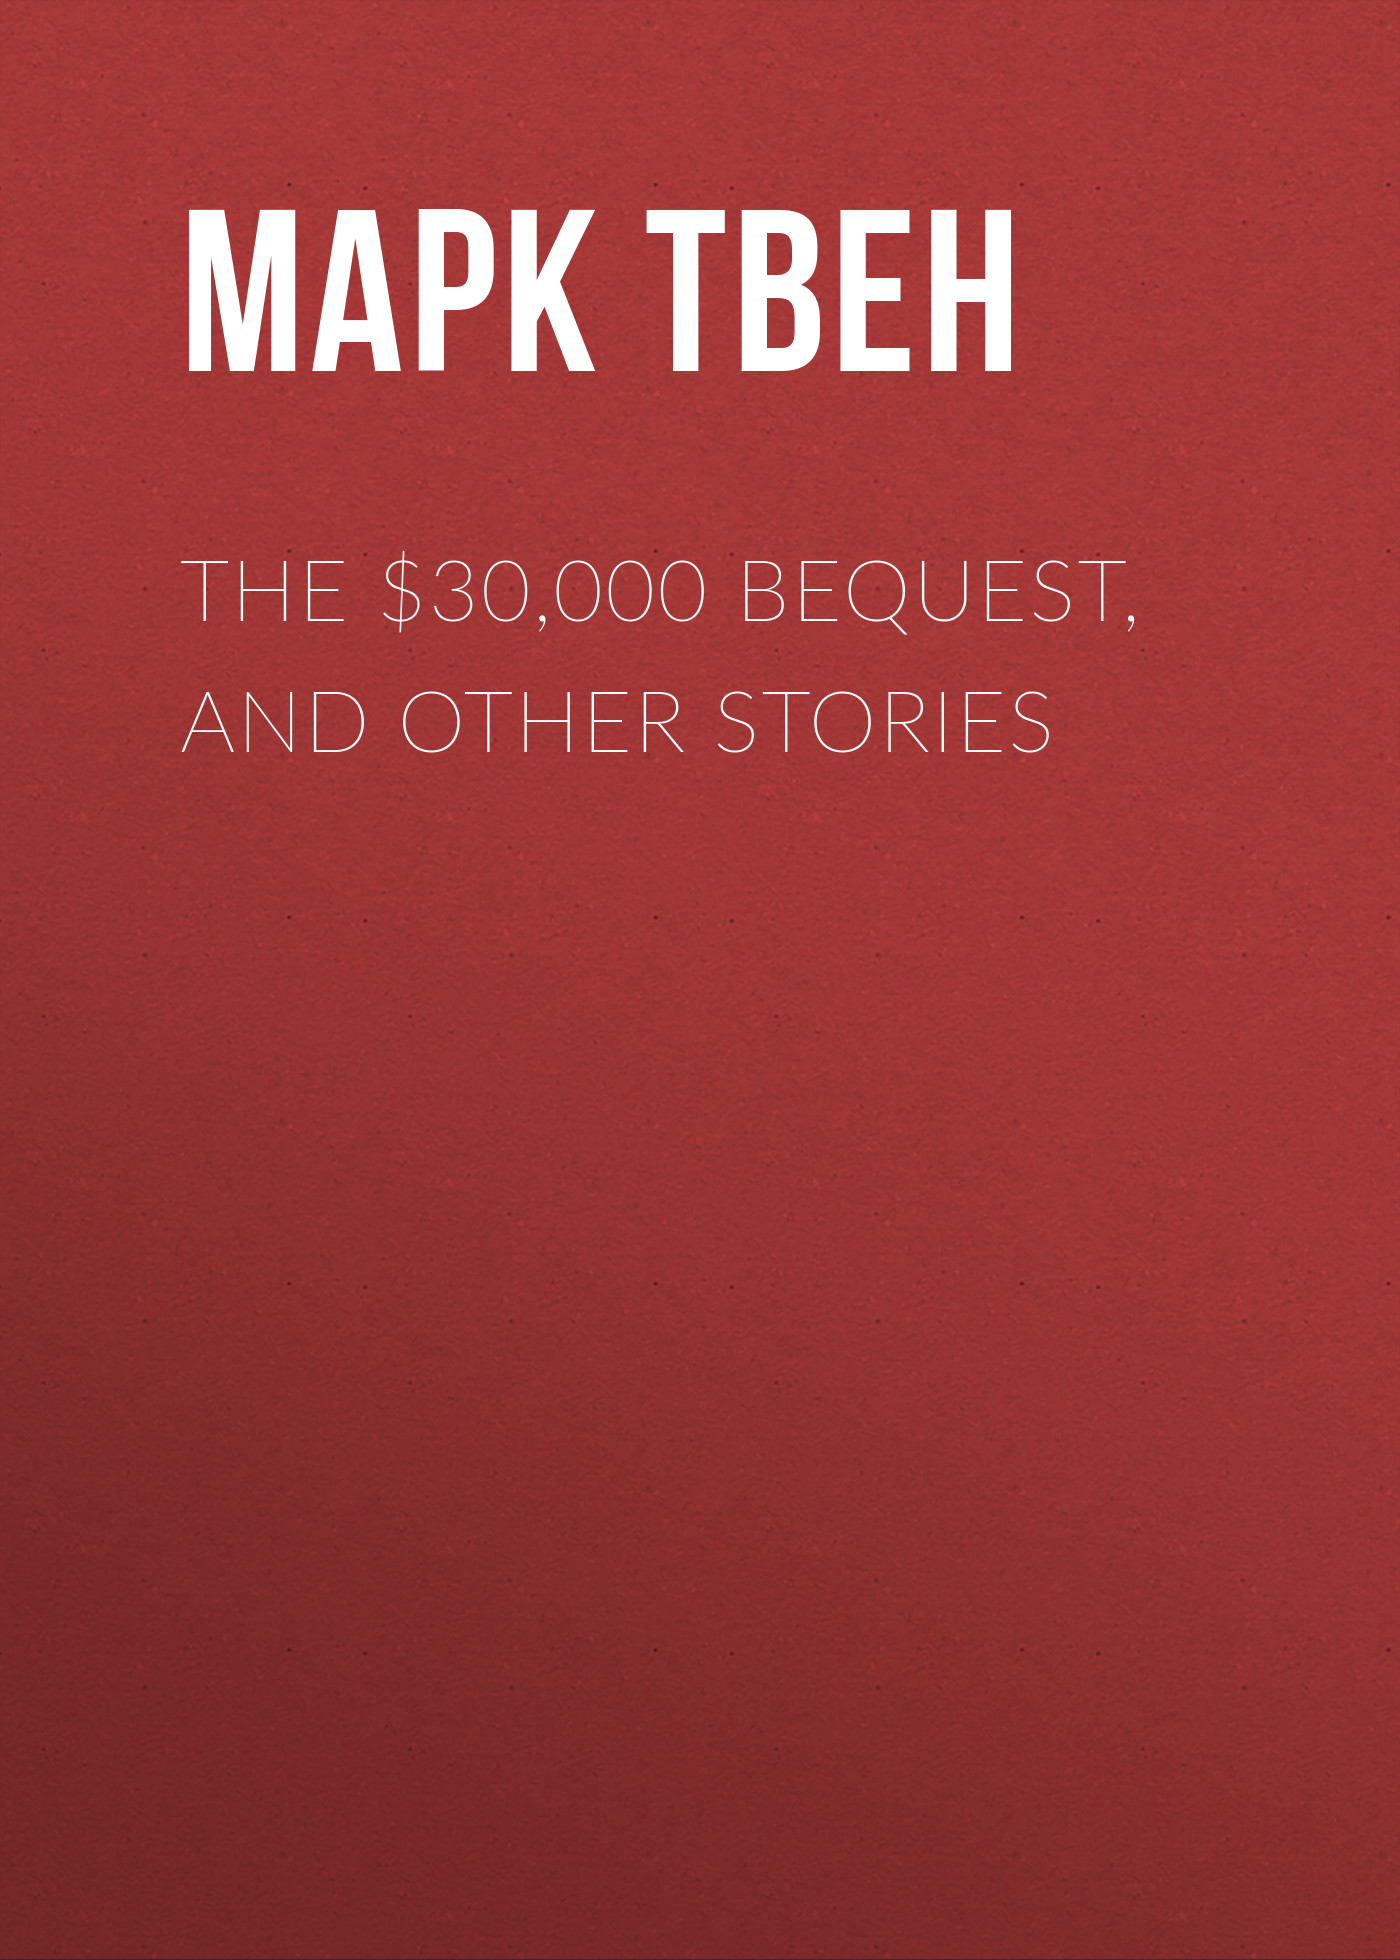 Марк Твен The $30,000 Bequest, and Other Stories марк твен 30 000 dollar bequest and other stories